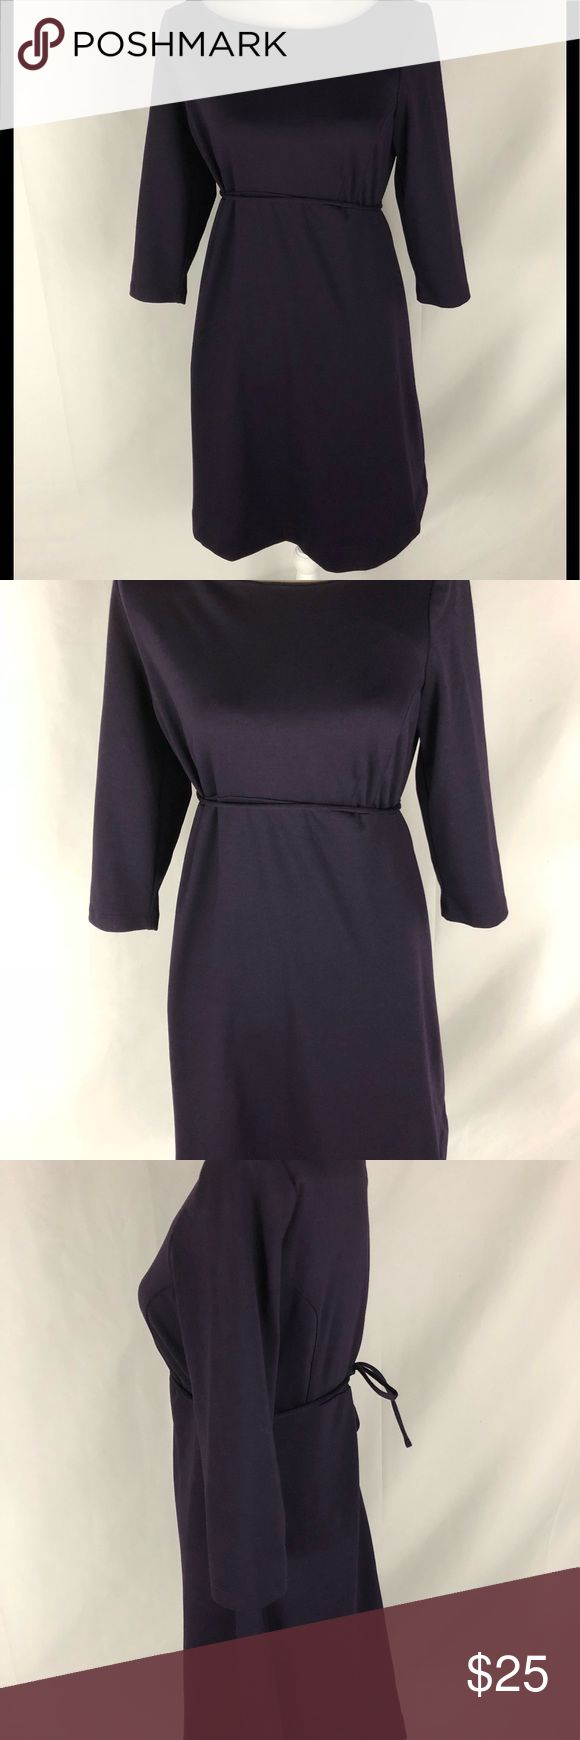 Maternity medium 3/4 Sleeve purple dress Women's maternity dress from motherhood. Deep purple in color with 3/4 length sleeves. Had a purple string that ties in from or back. Long silver zip up in back from dress.  EUC  Machine wash lay flat to try   69% Polyester. 22% Rayon. 9% Spandex Motherhood Dresses Long Sleeve